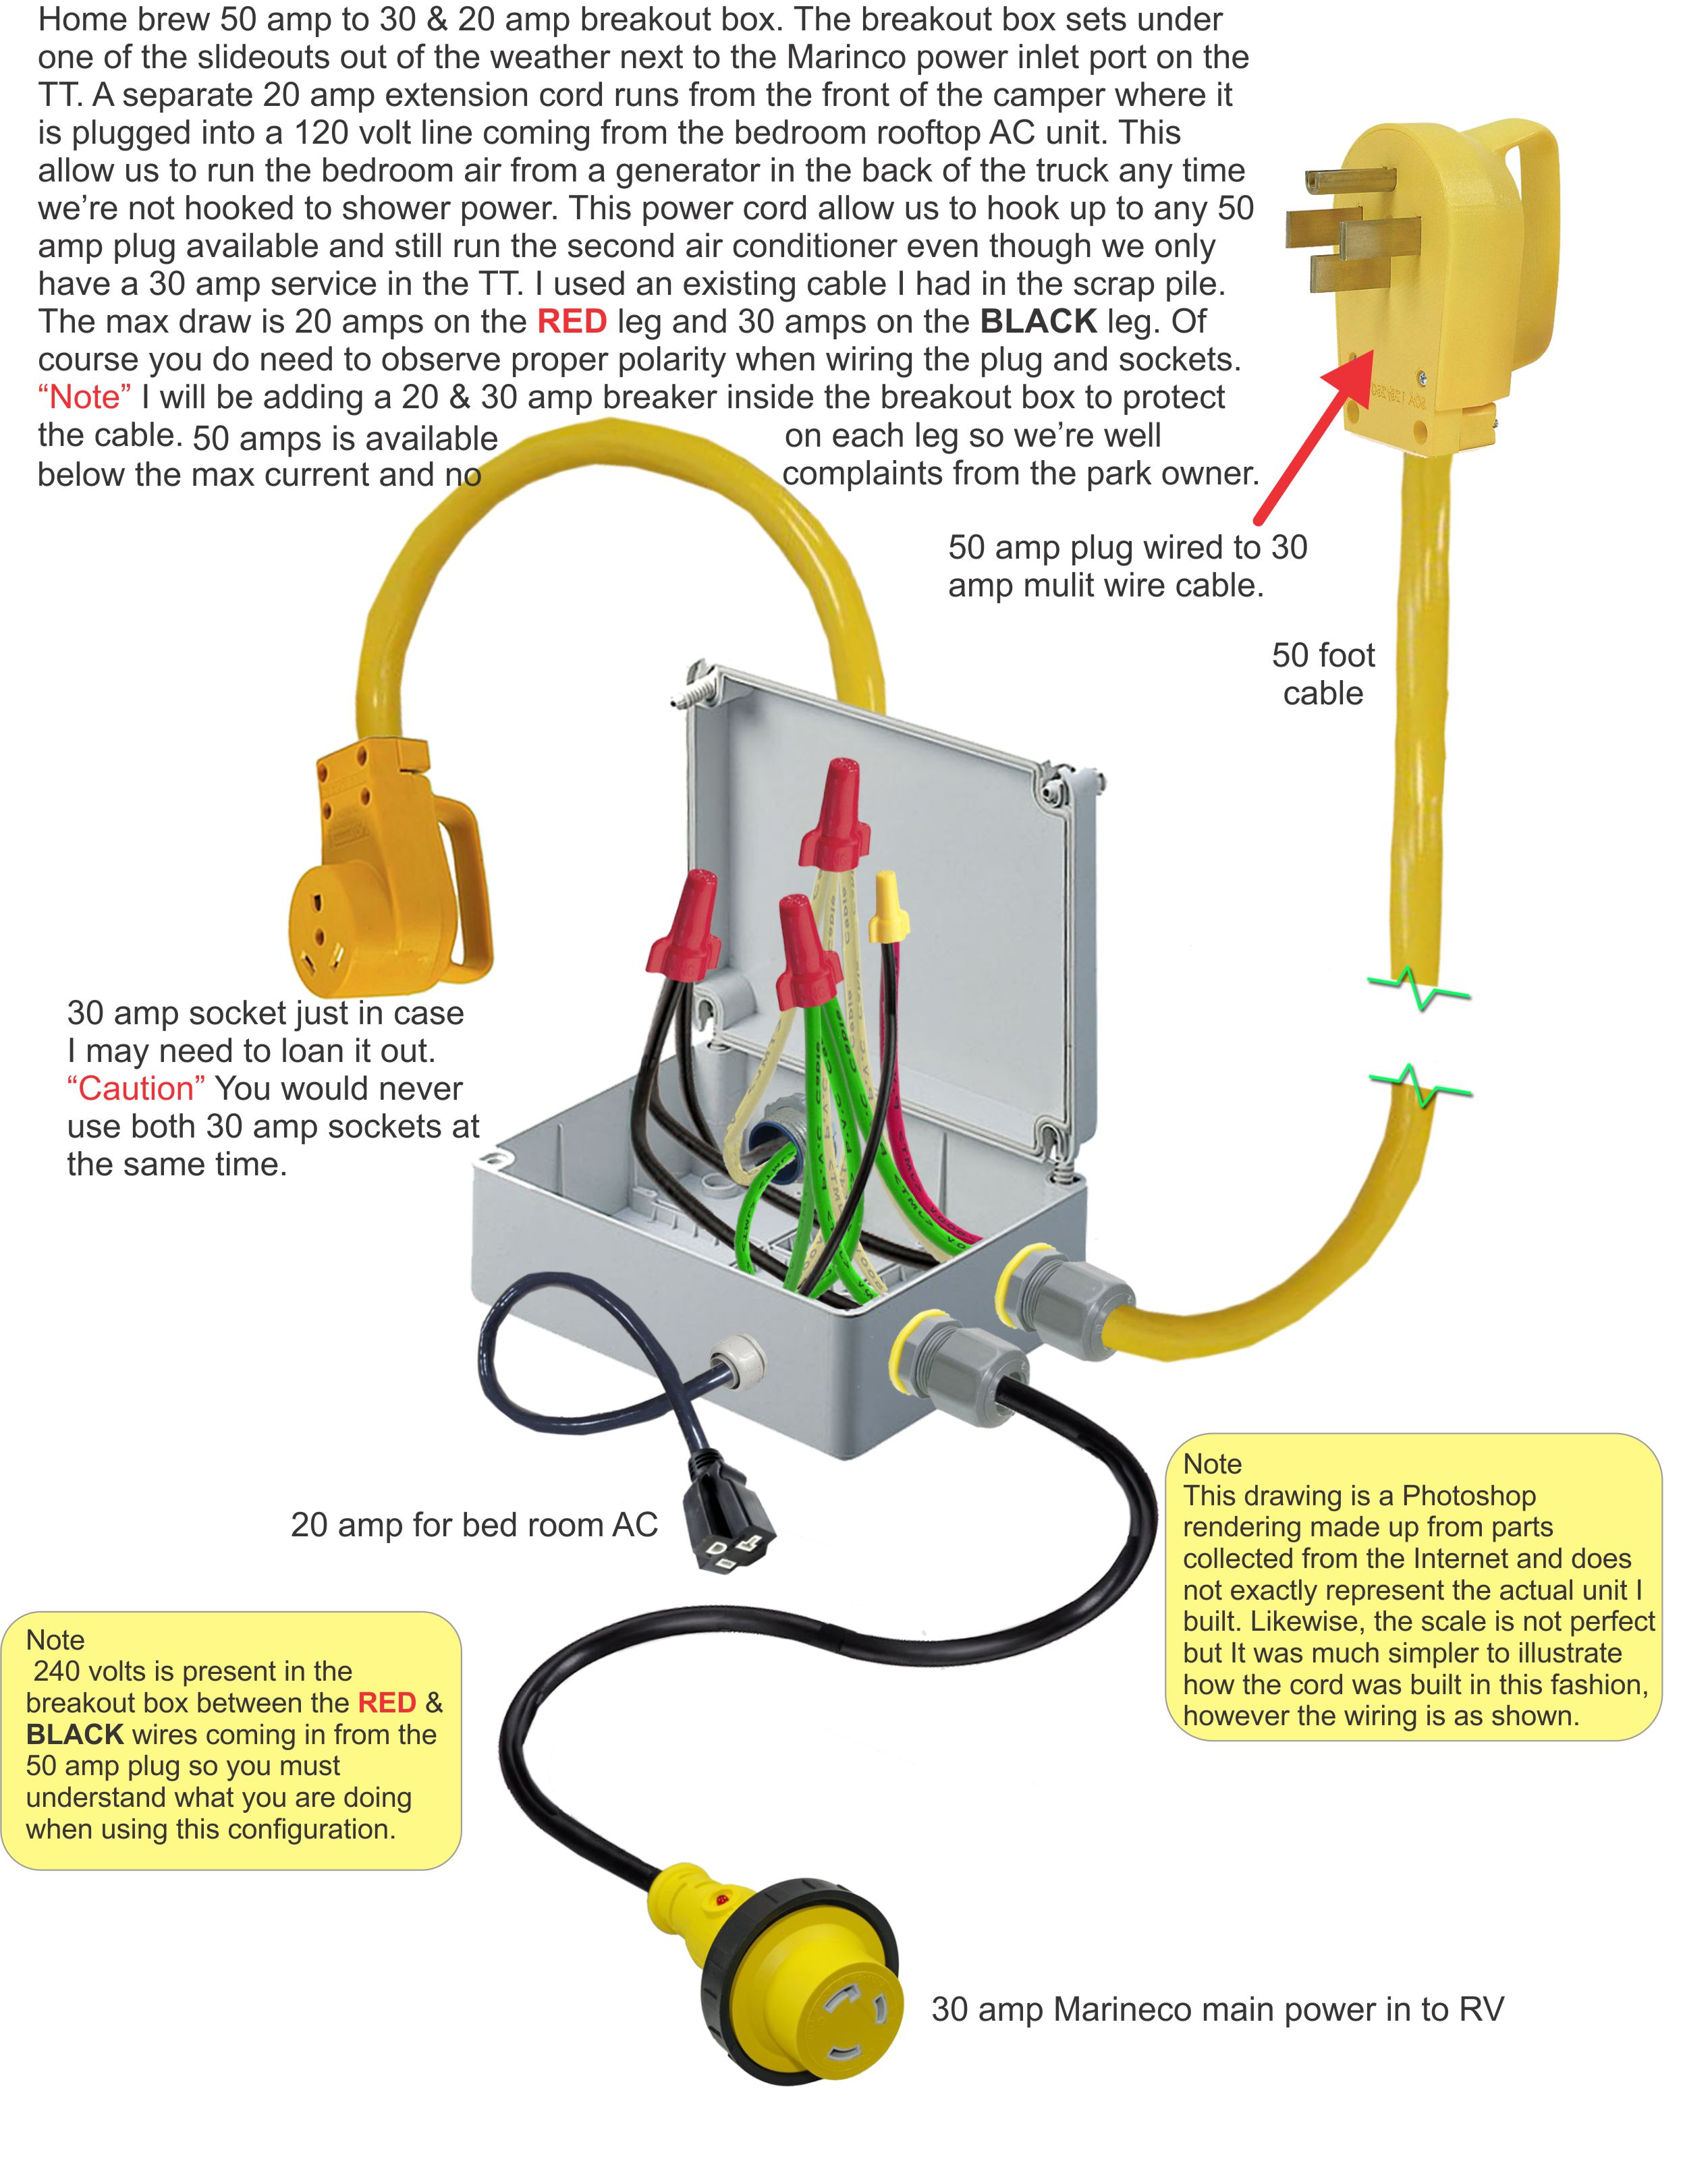 50 amp rv wiring diagram trailer rv.net open roads forum: travel trailers: 50 amp to 20$30 ... #4